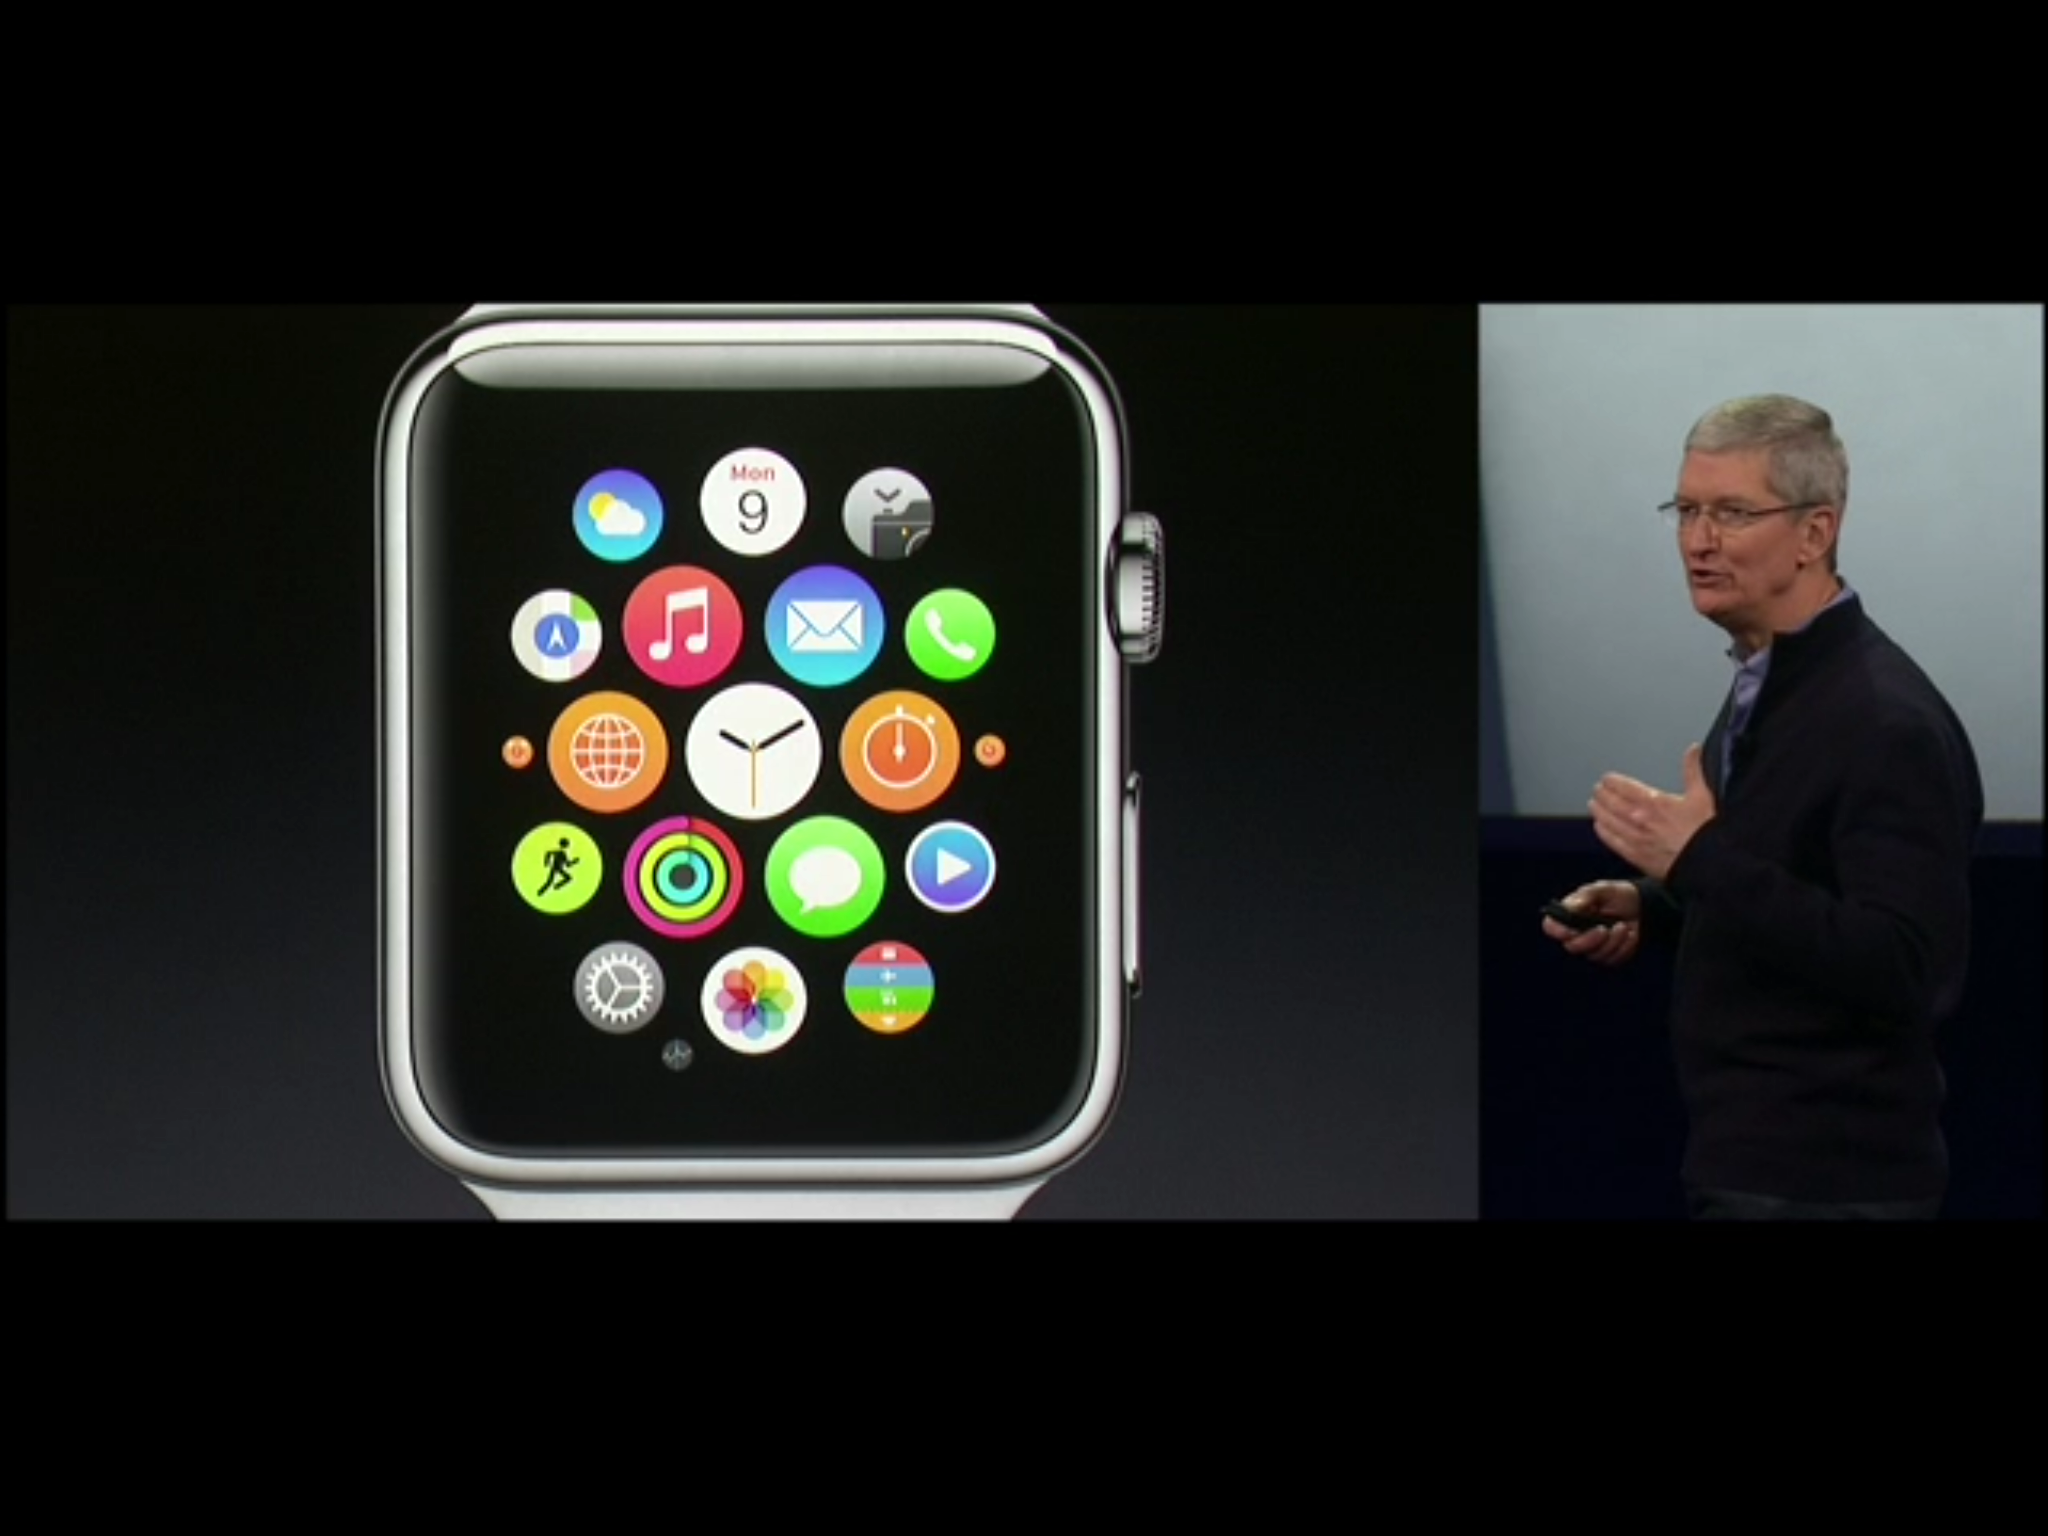 The Apple Watch: An Amazing Device, but Not for Me.